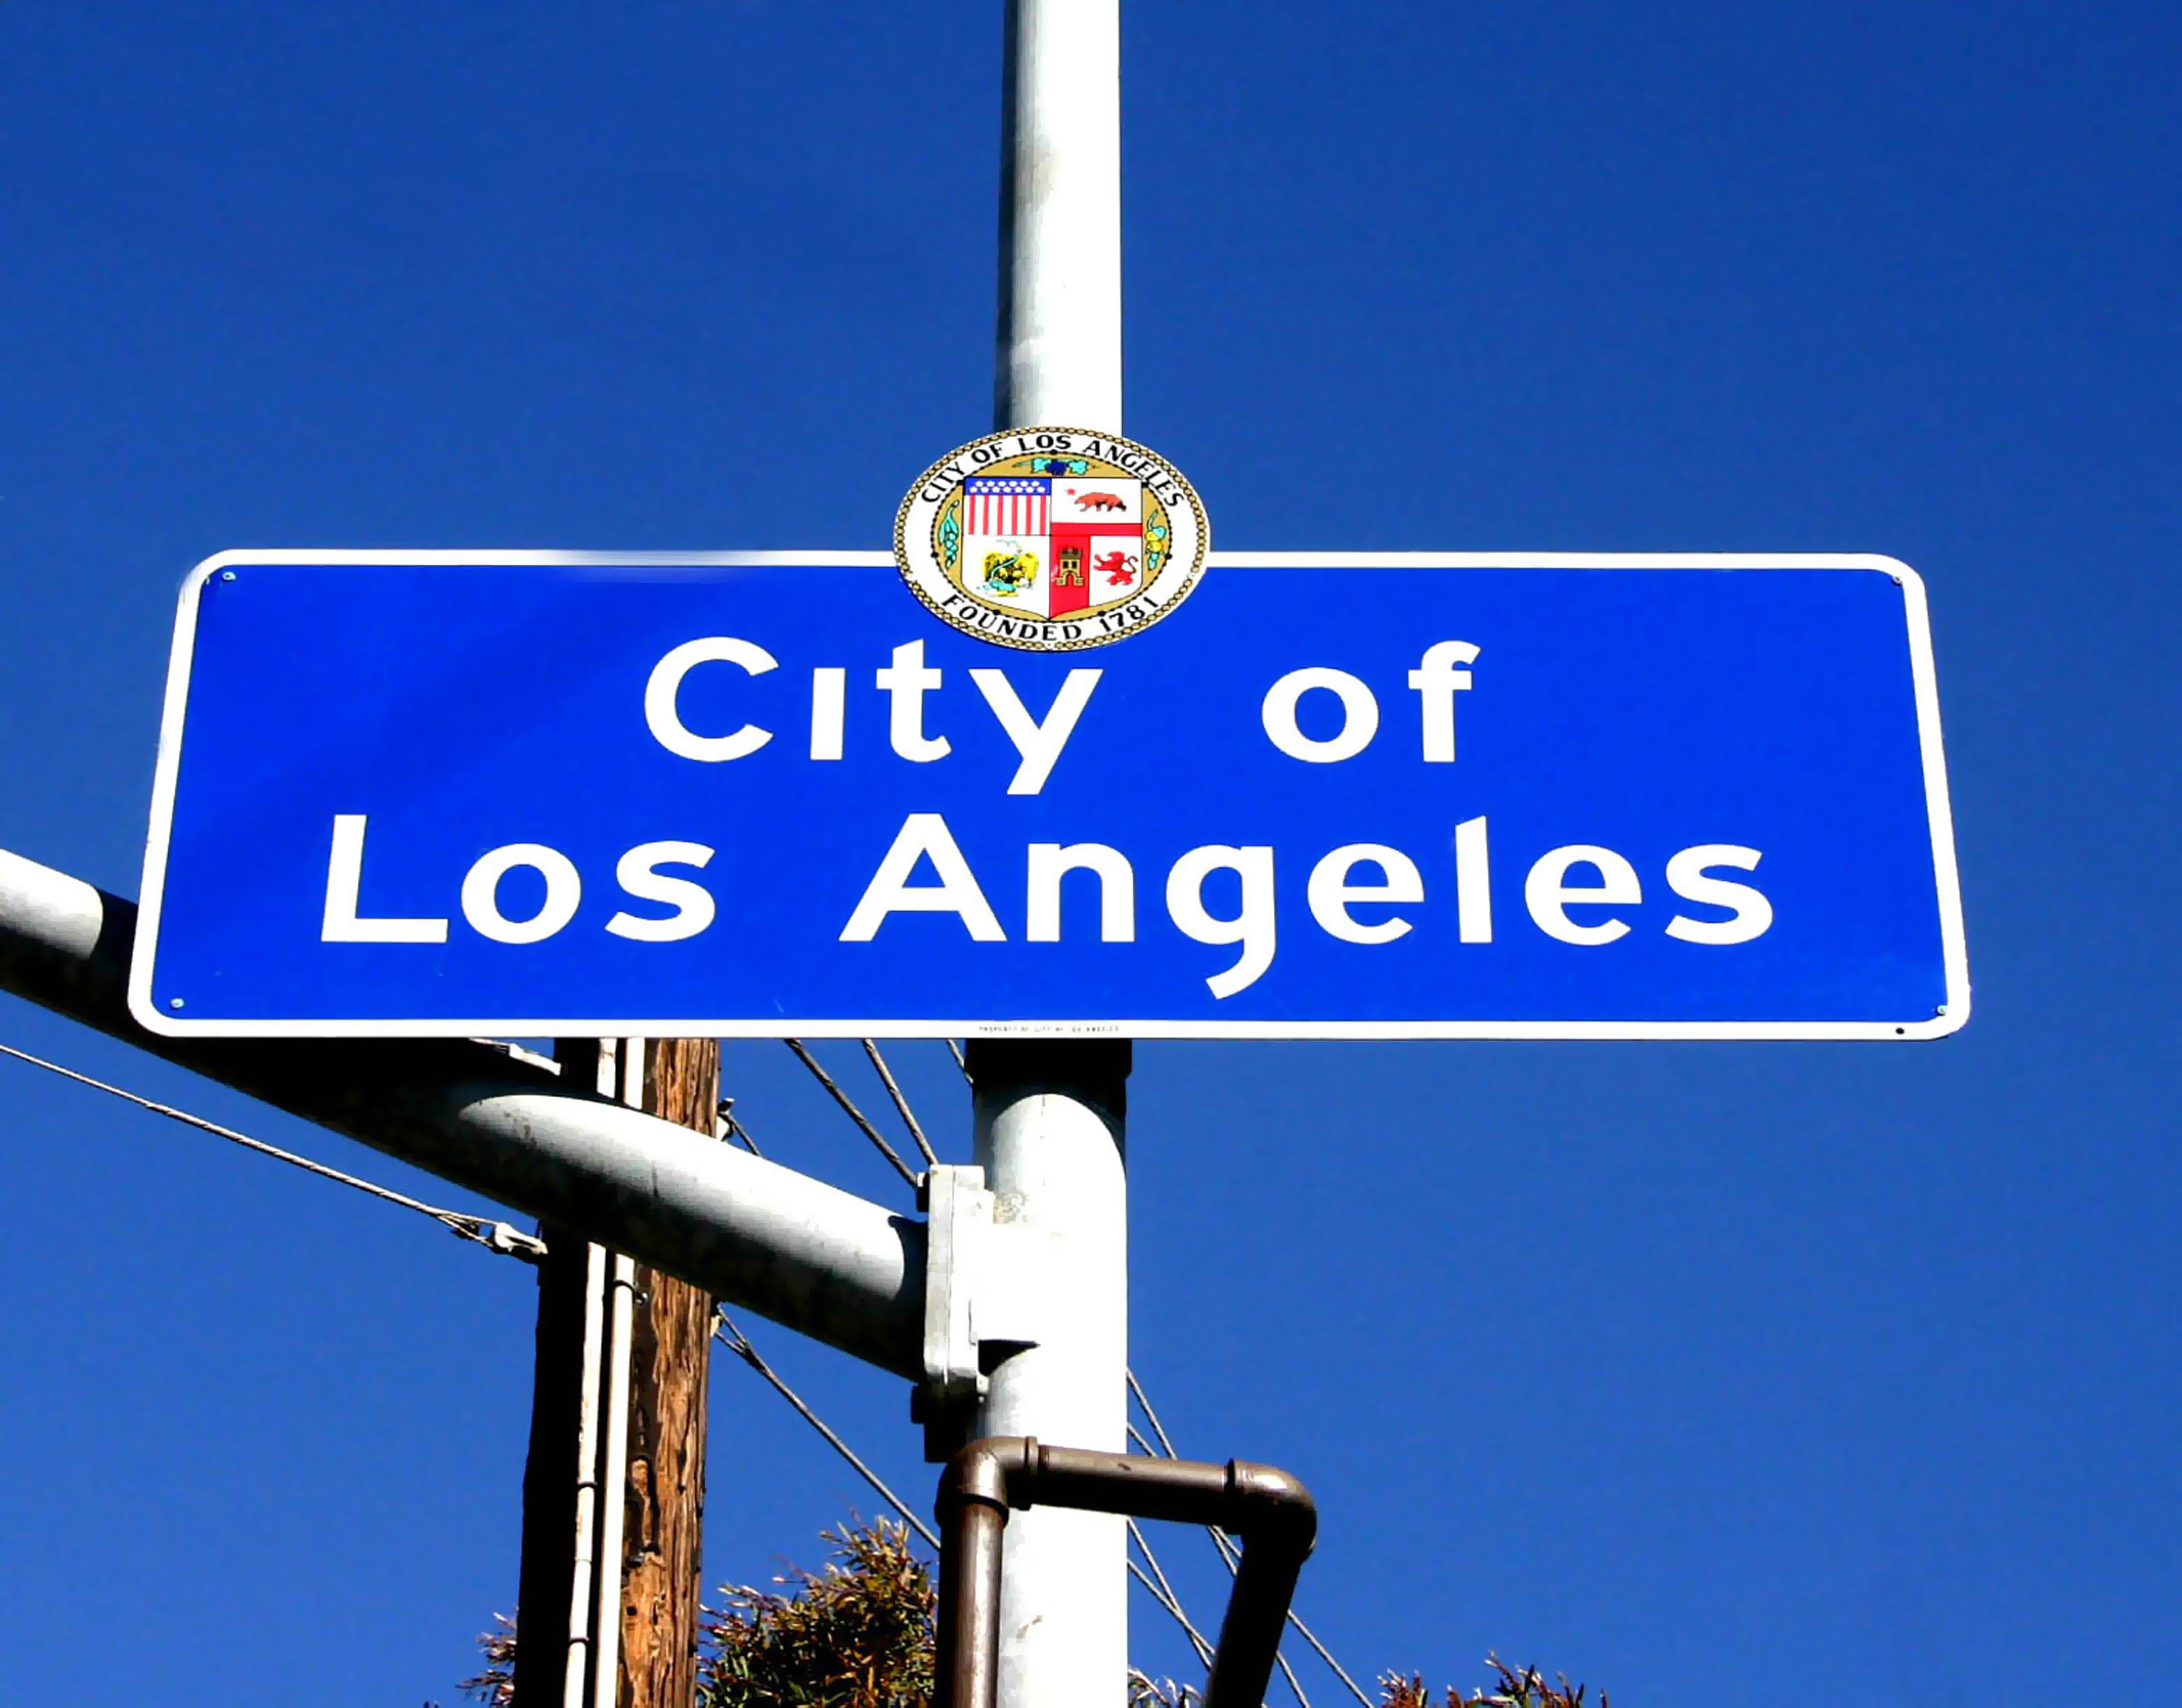 The city of los angeles essay